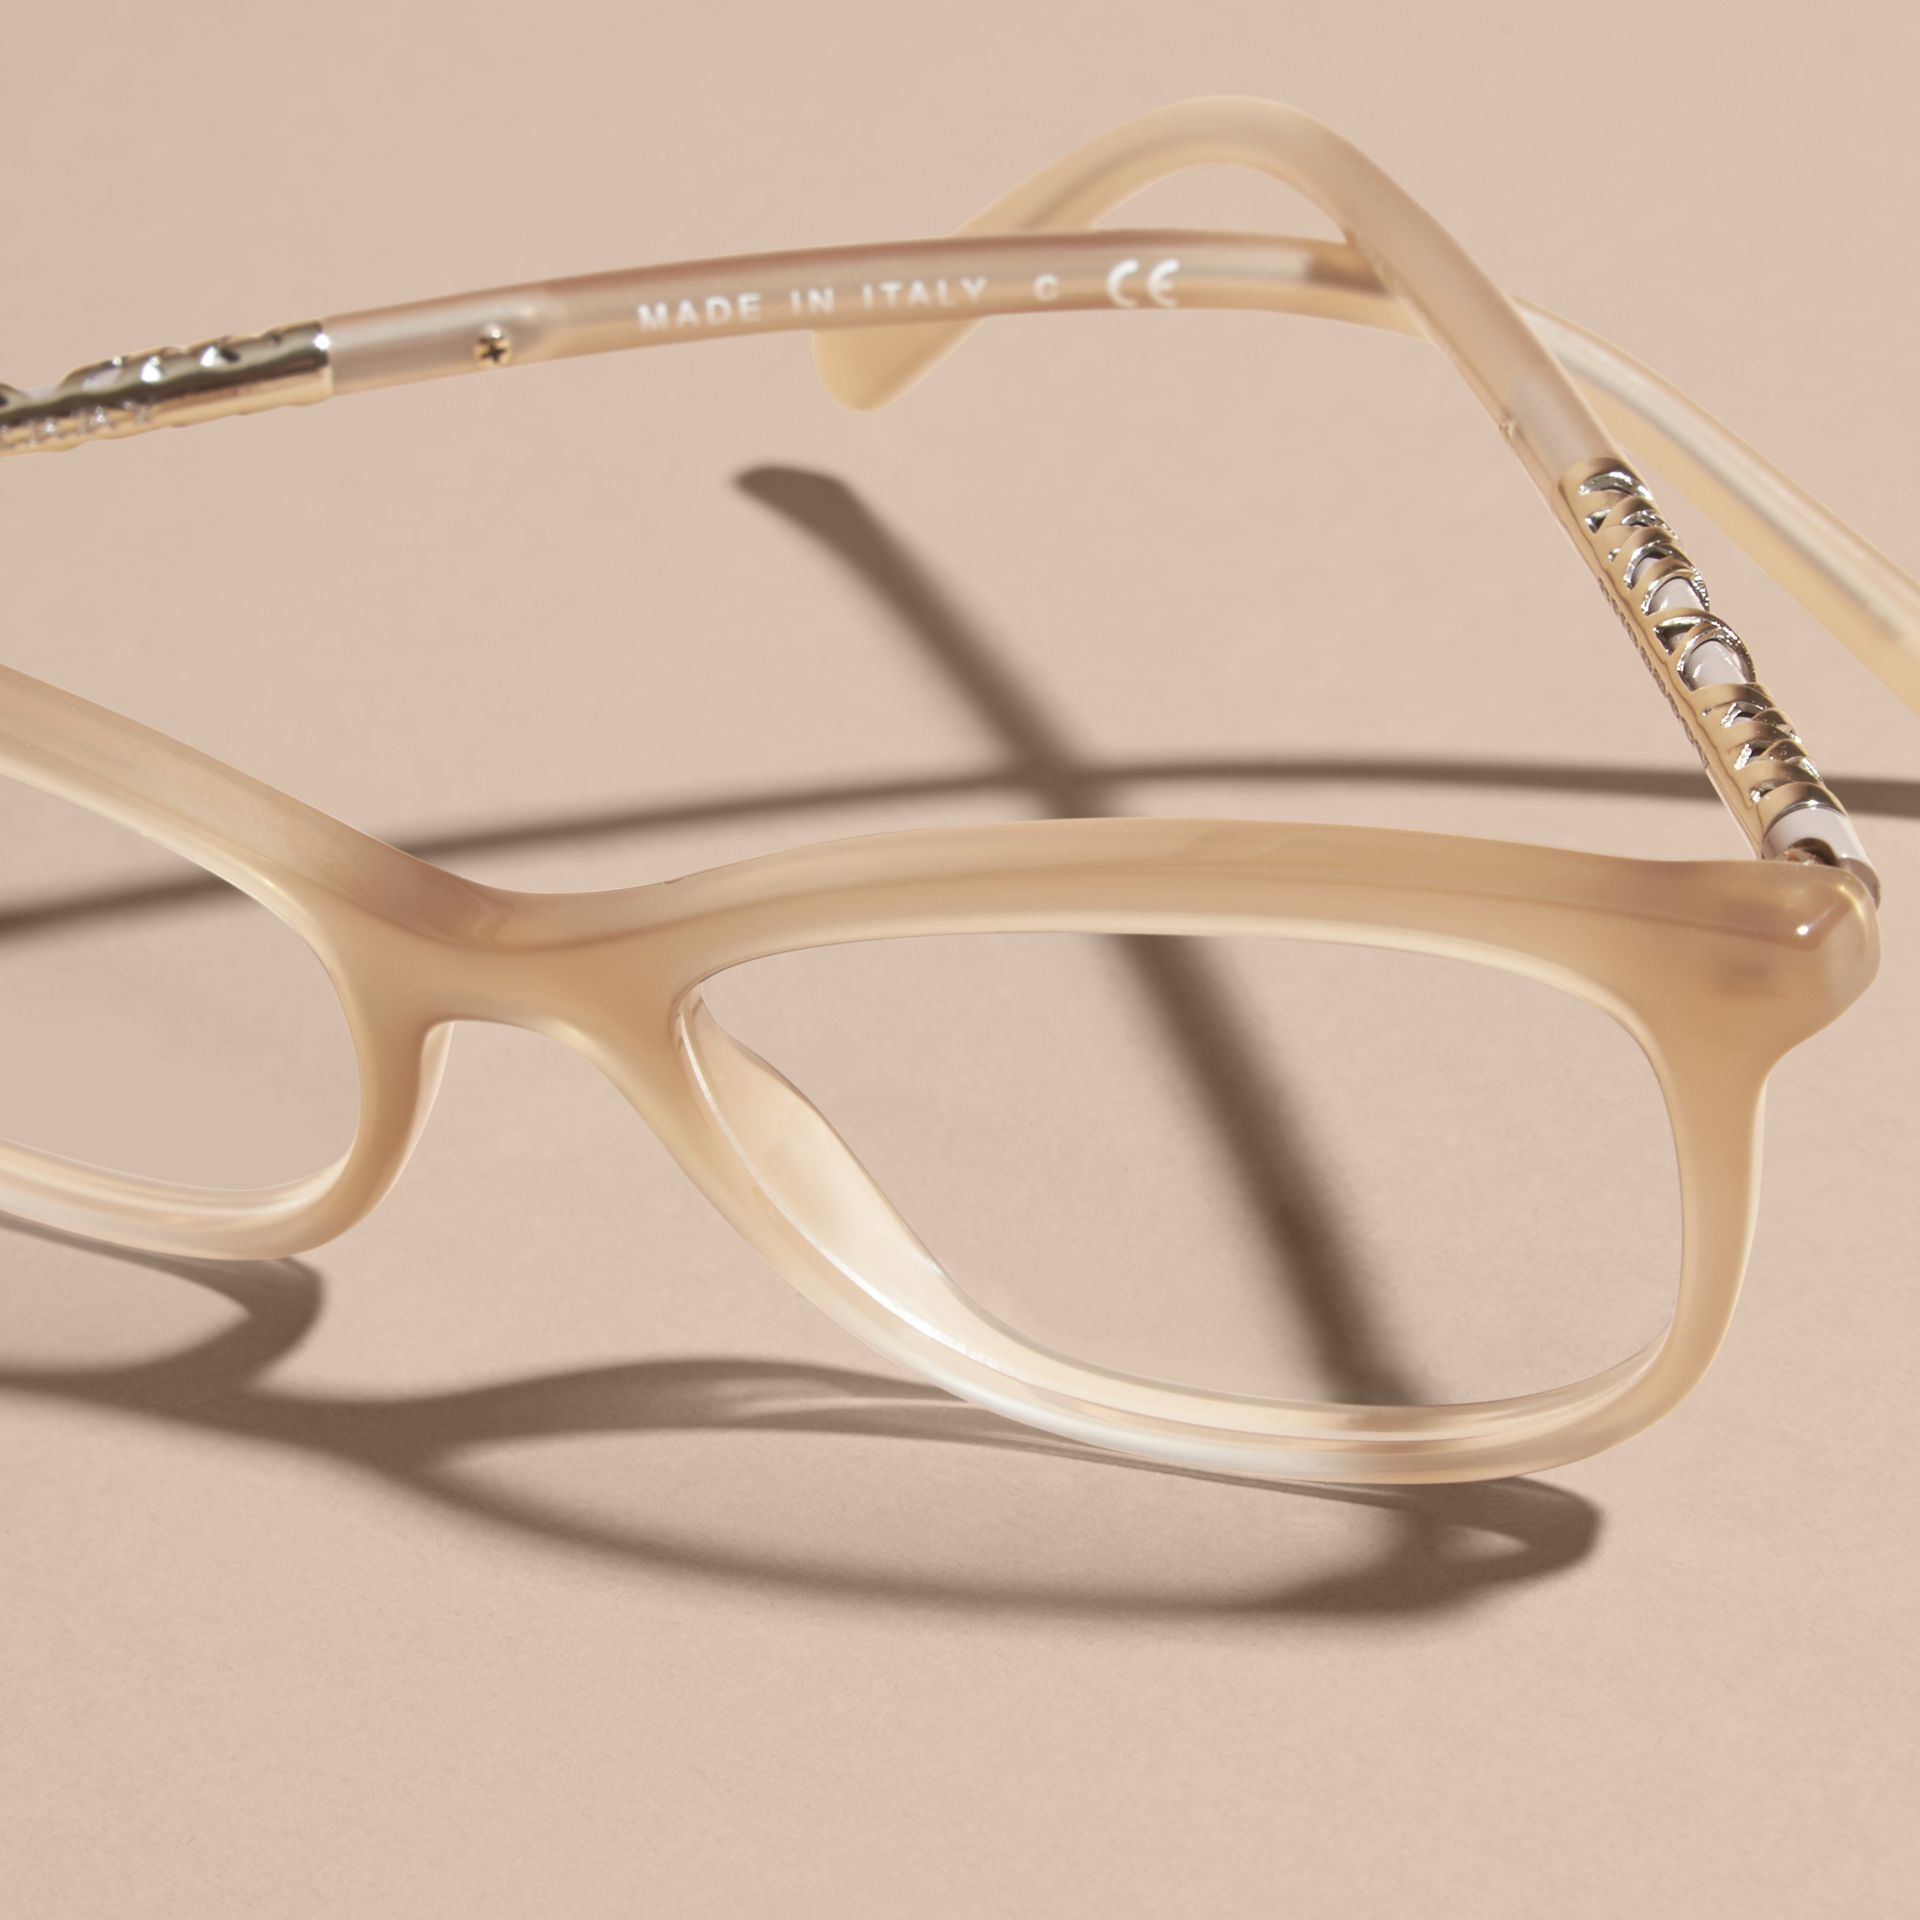 Chino grey Check Detail Oval Optical Frames Chino Grey - gallery image 3